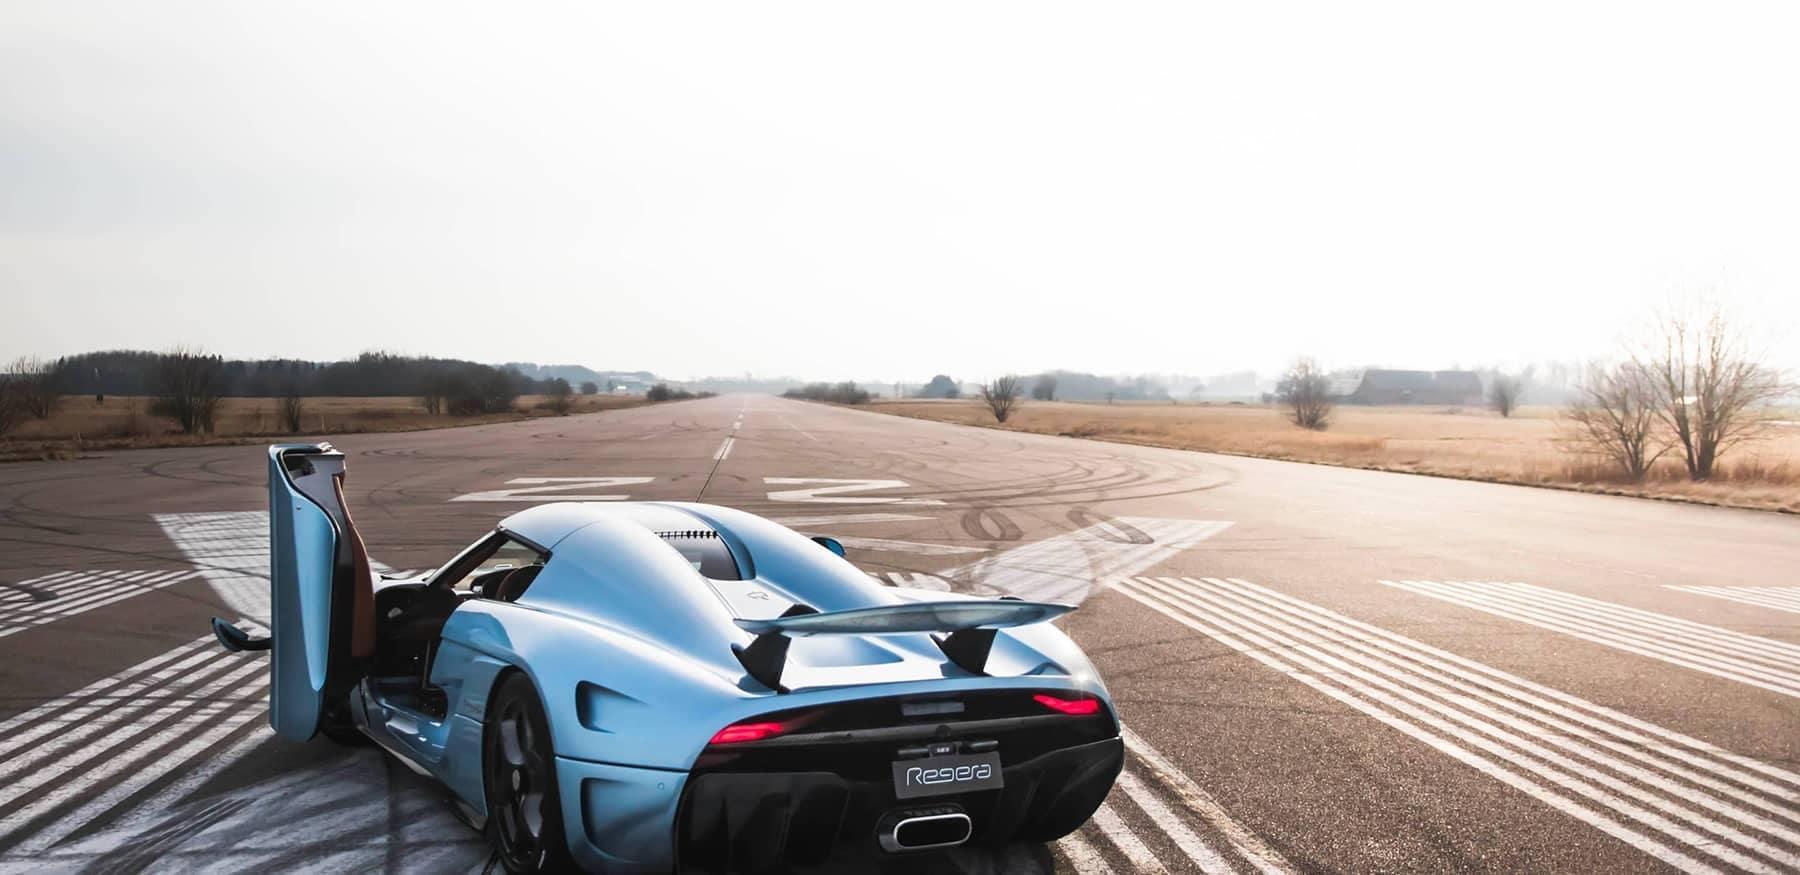 Regera with passenger door open on open road